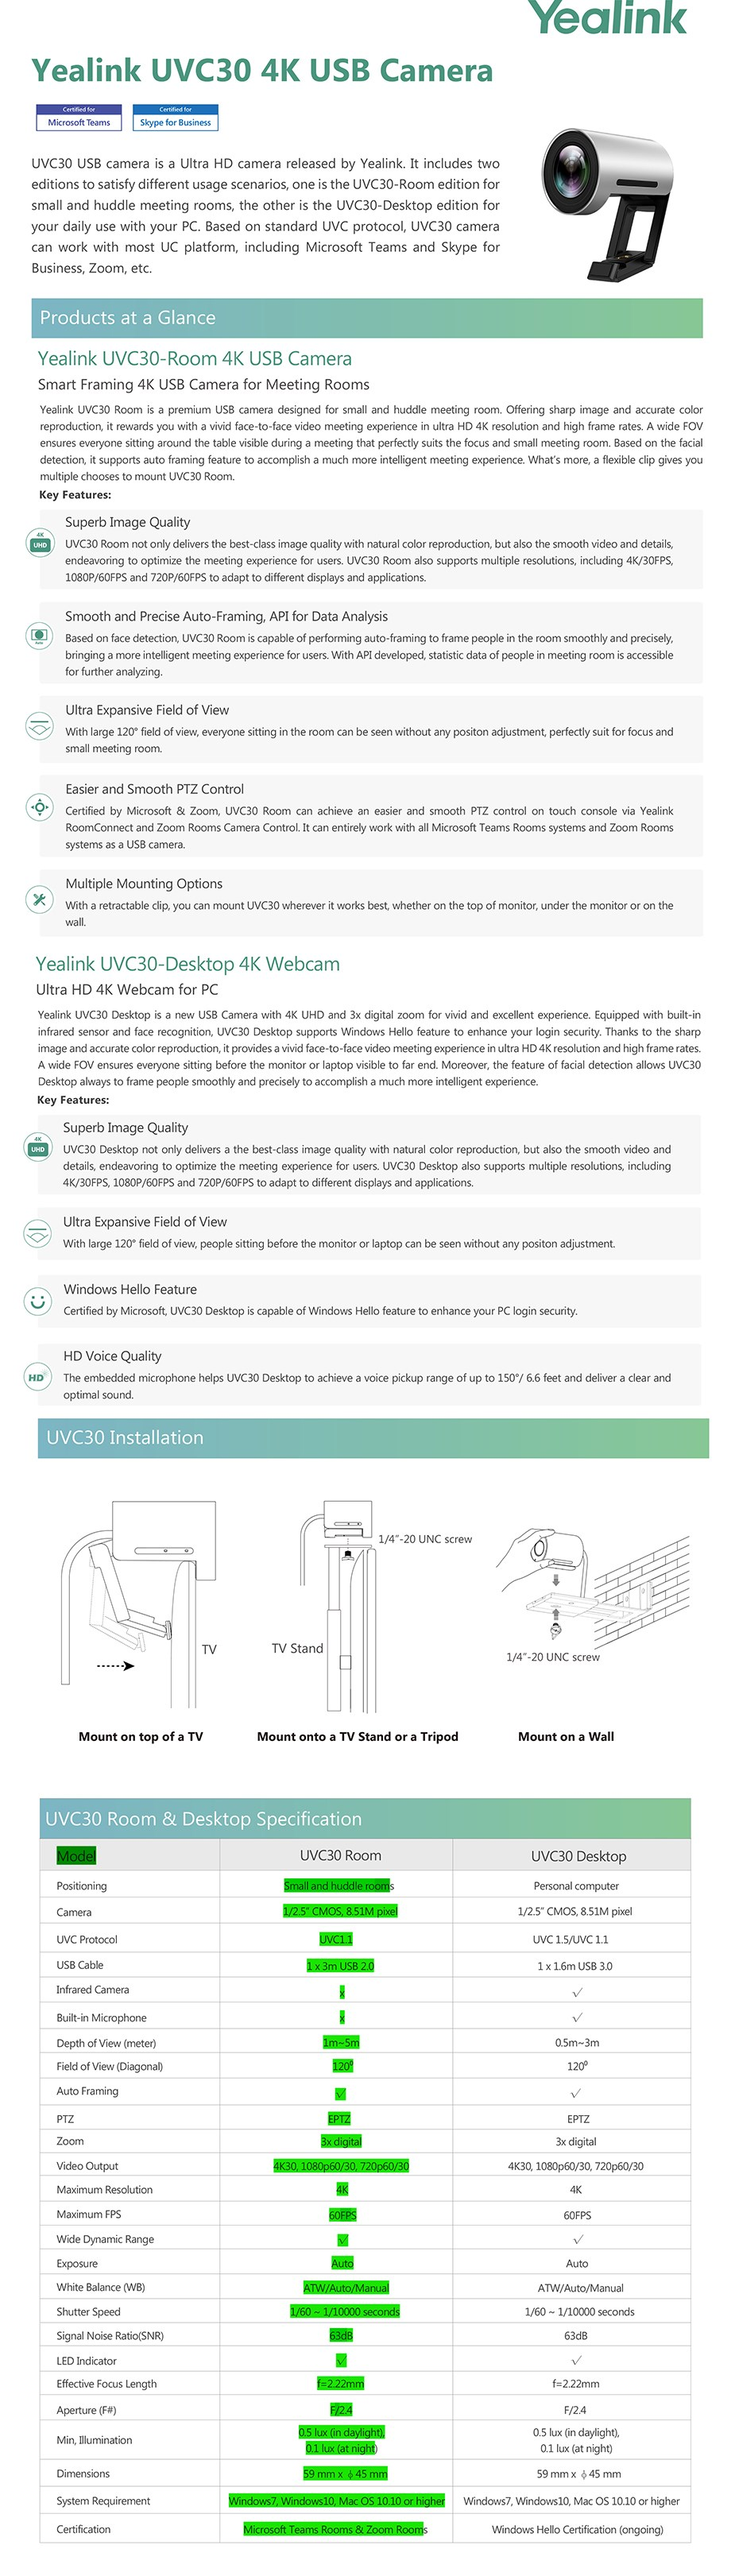 Yealink UVC30 4K USB Camera for Meeting Rooms - Overview 1